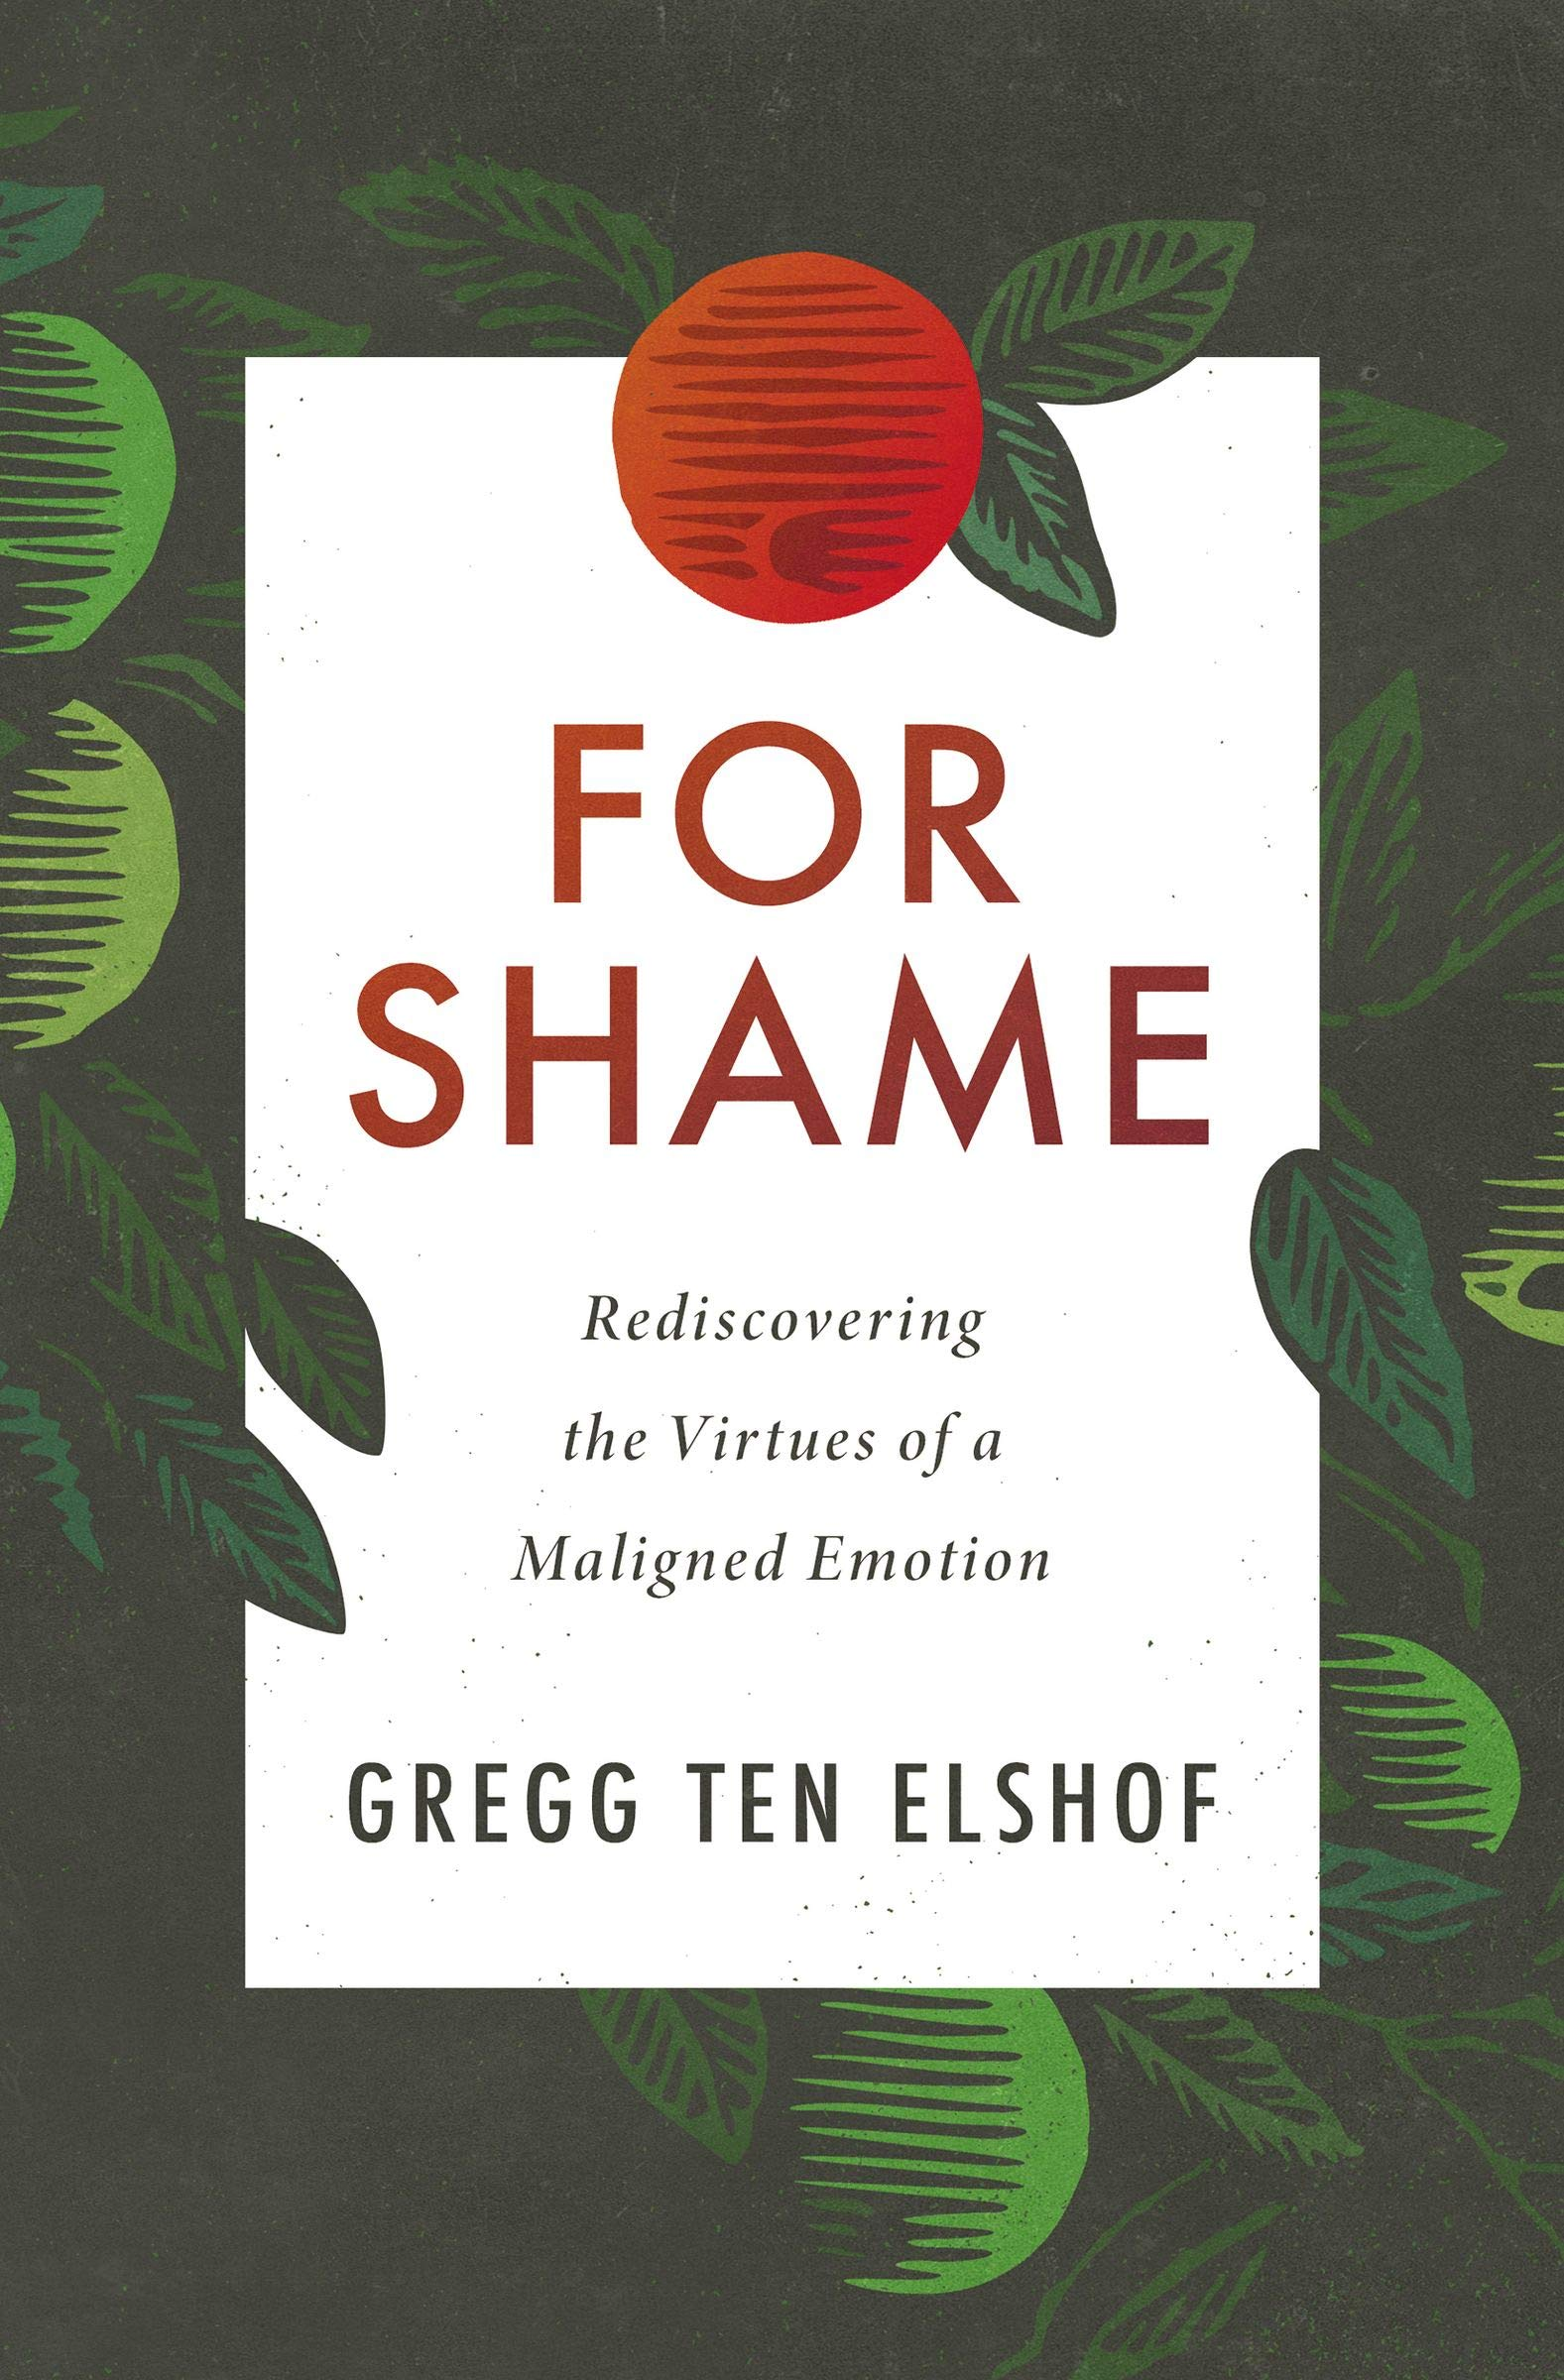 Book Review: 'For Shame: Rediscovering the Virtues of a Maligned Emotion' by Gregg Ten Elshof